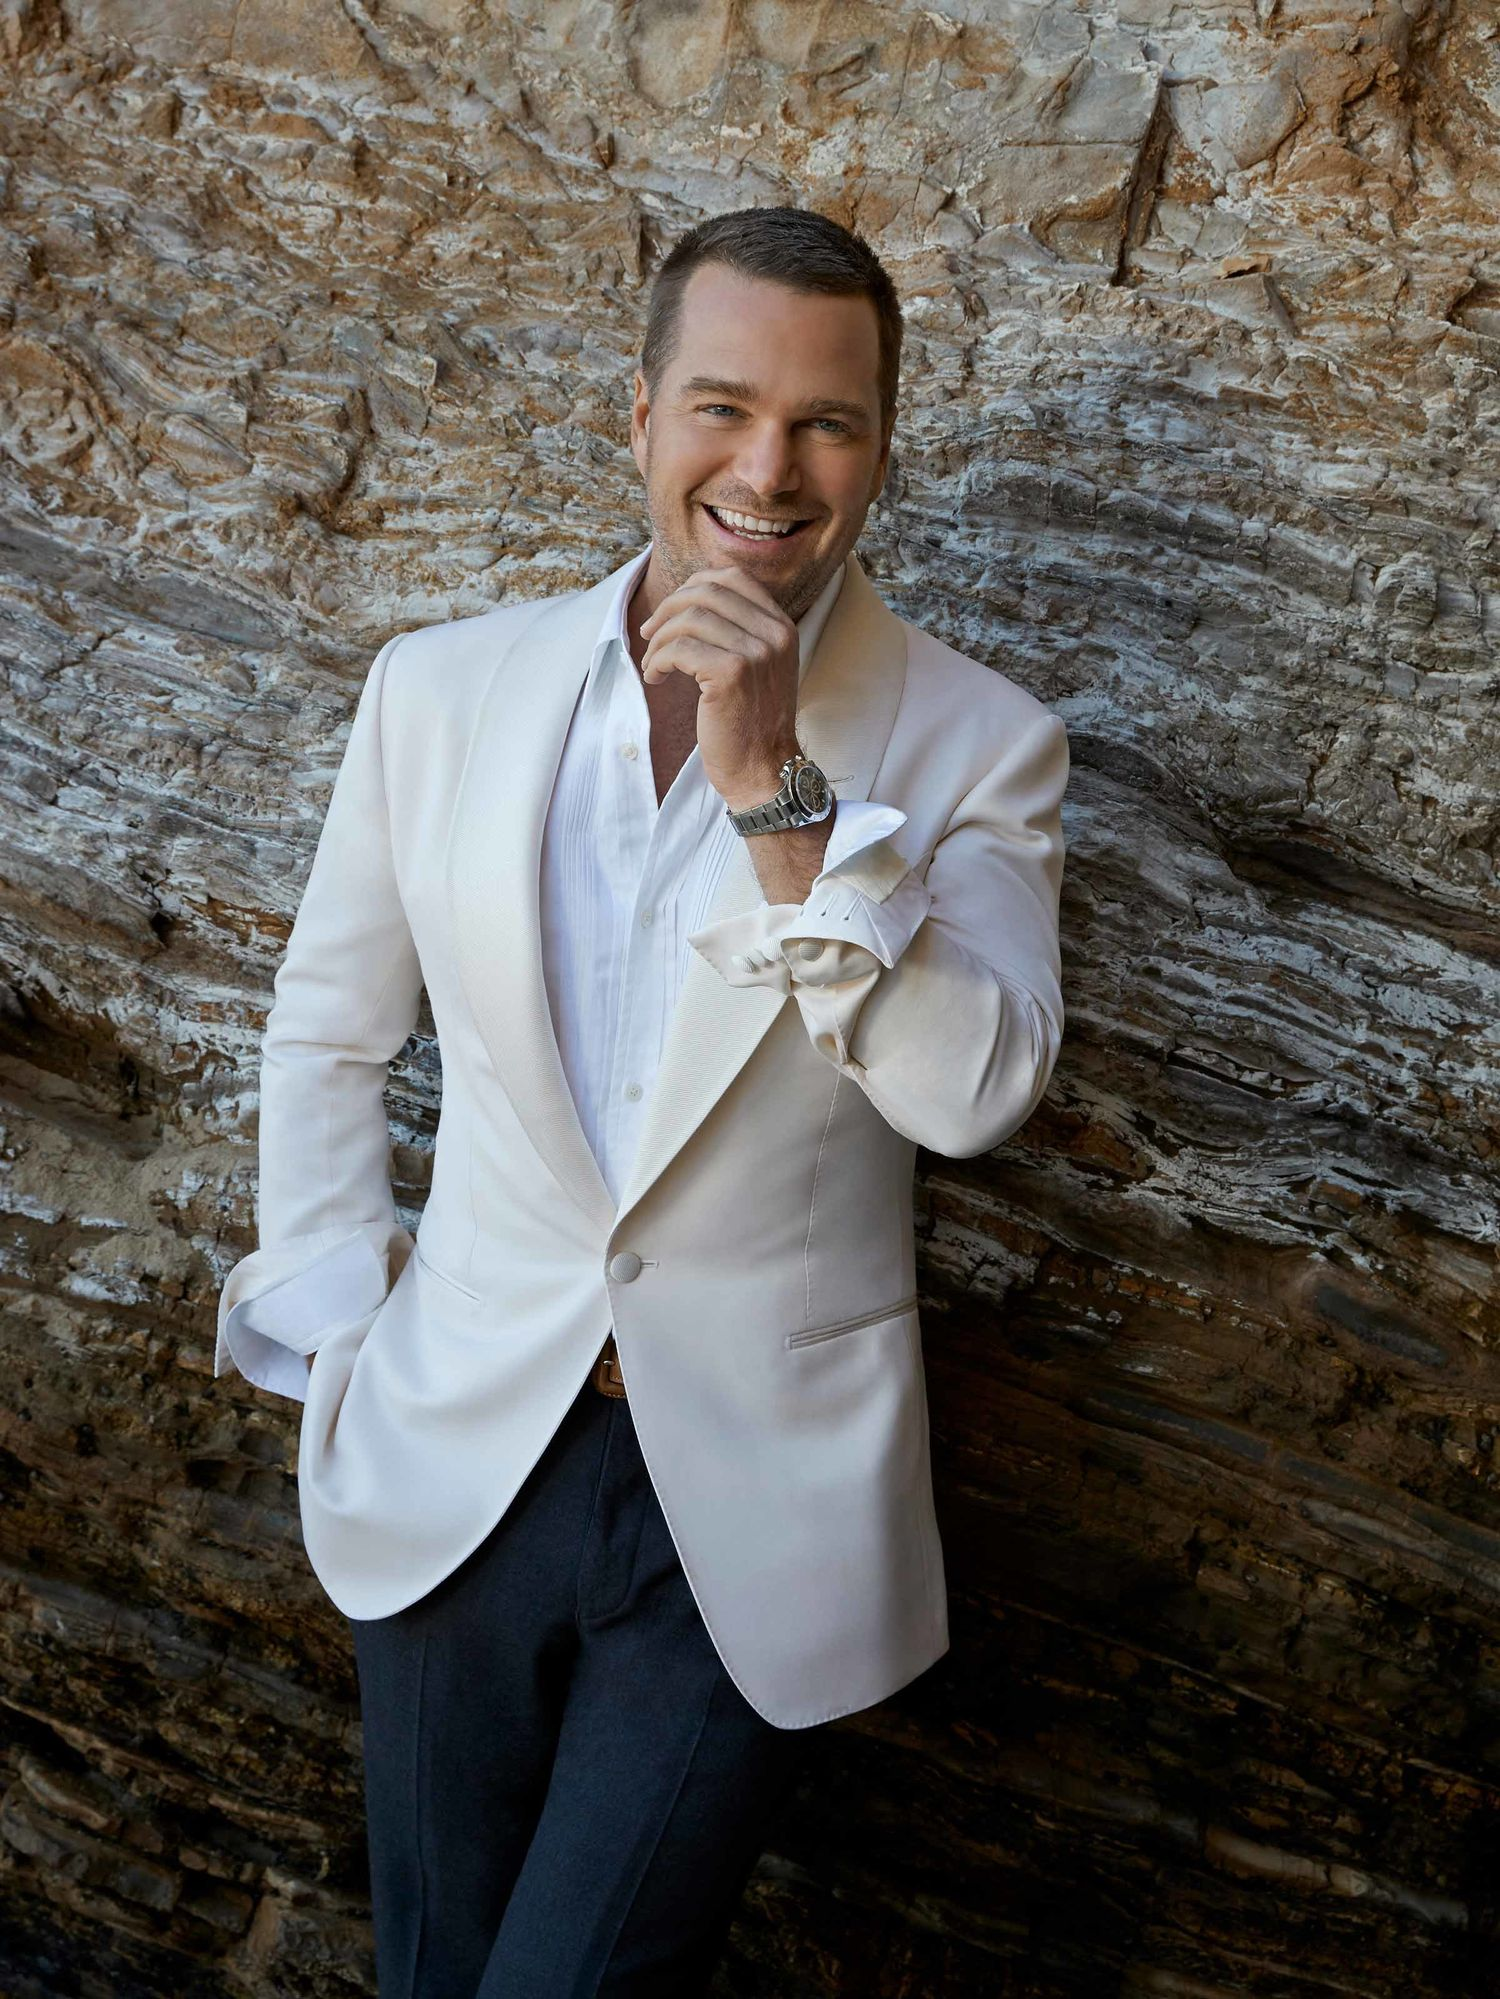 Chris O'Donnell in a cream jacket and white shirt and smiling with his hand on his chin